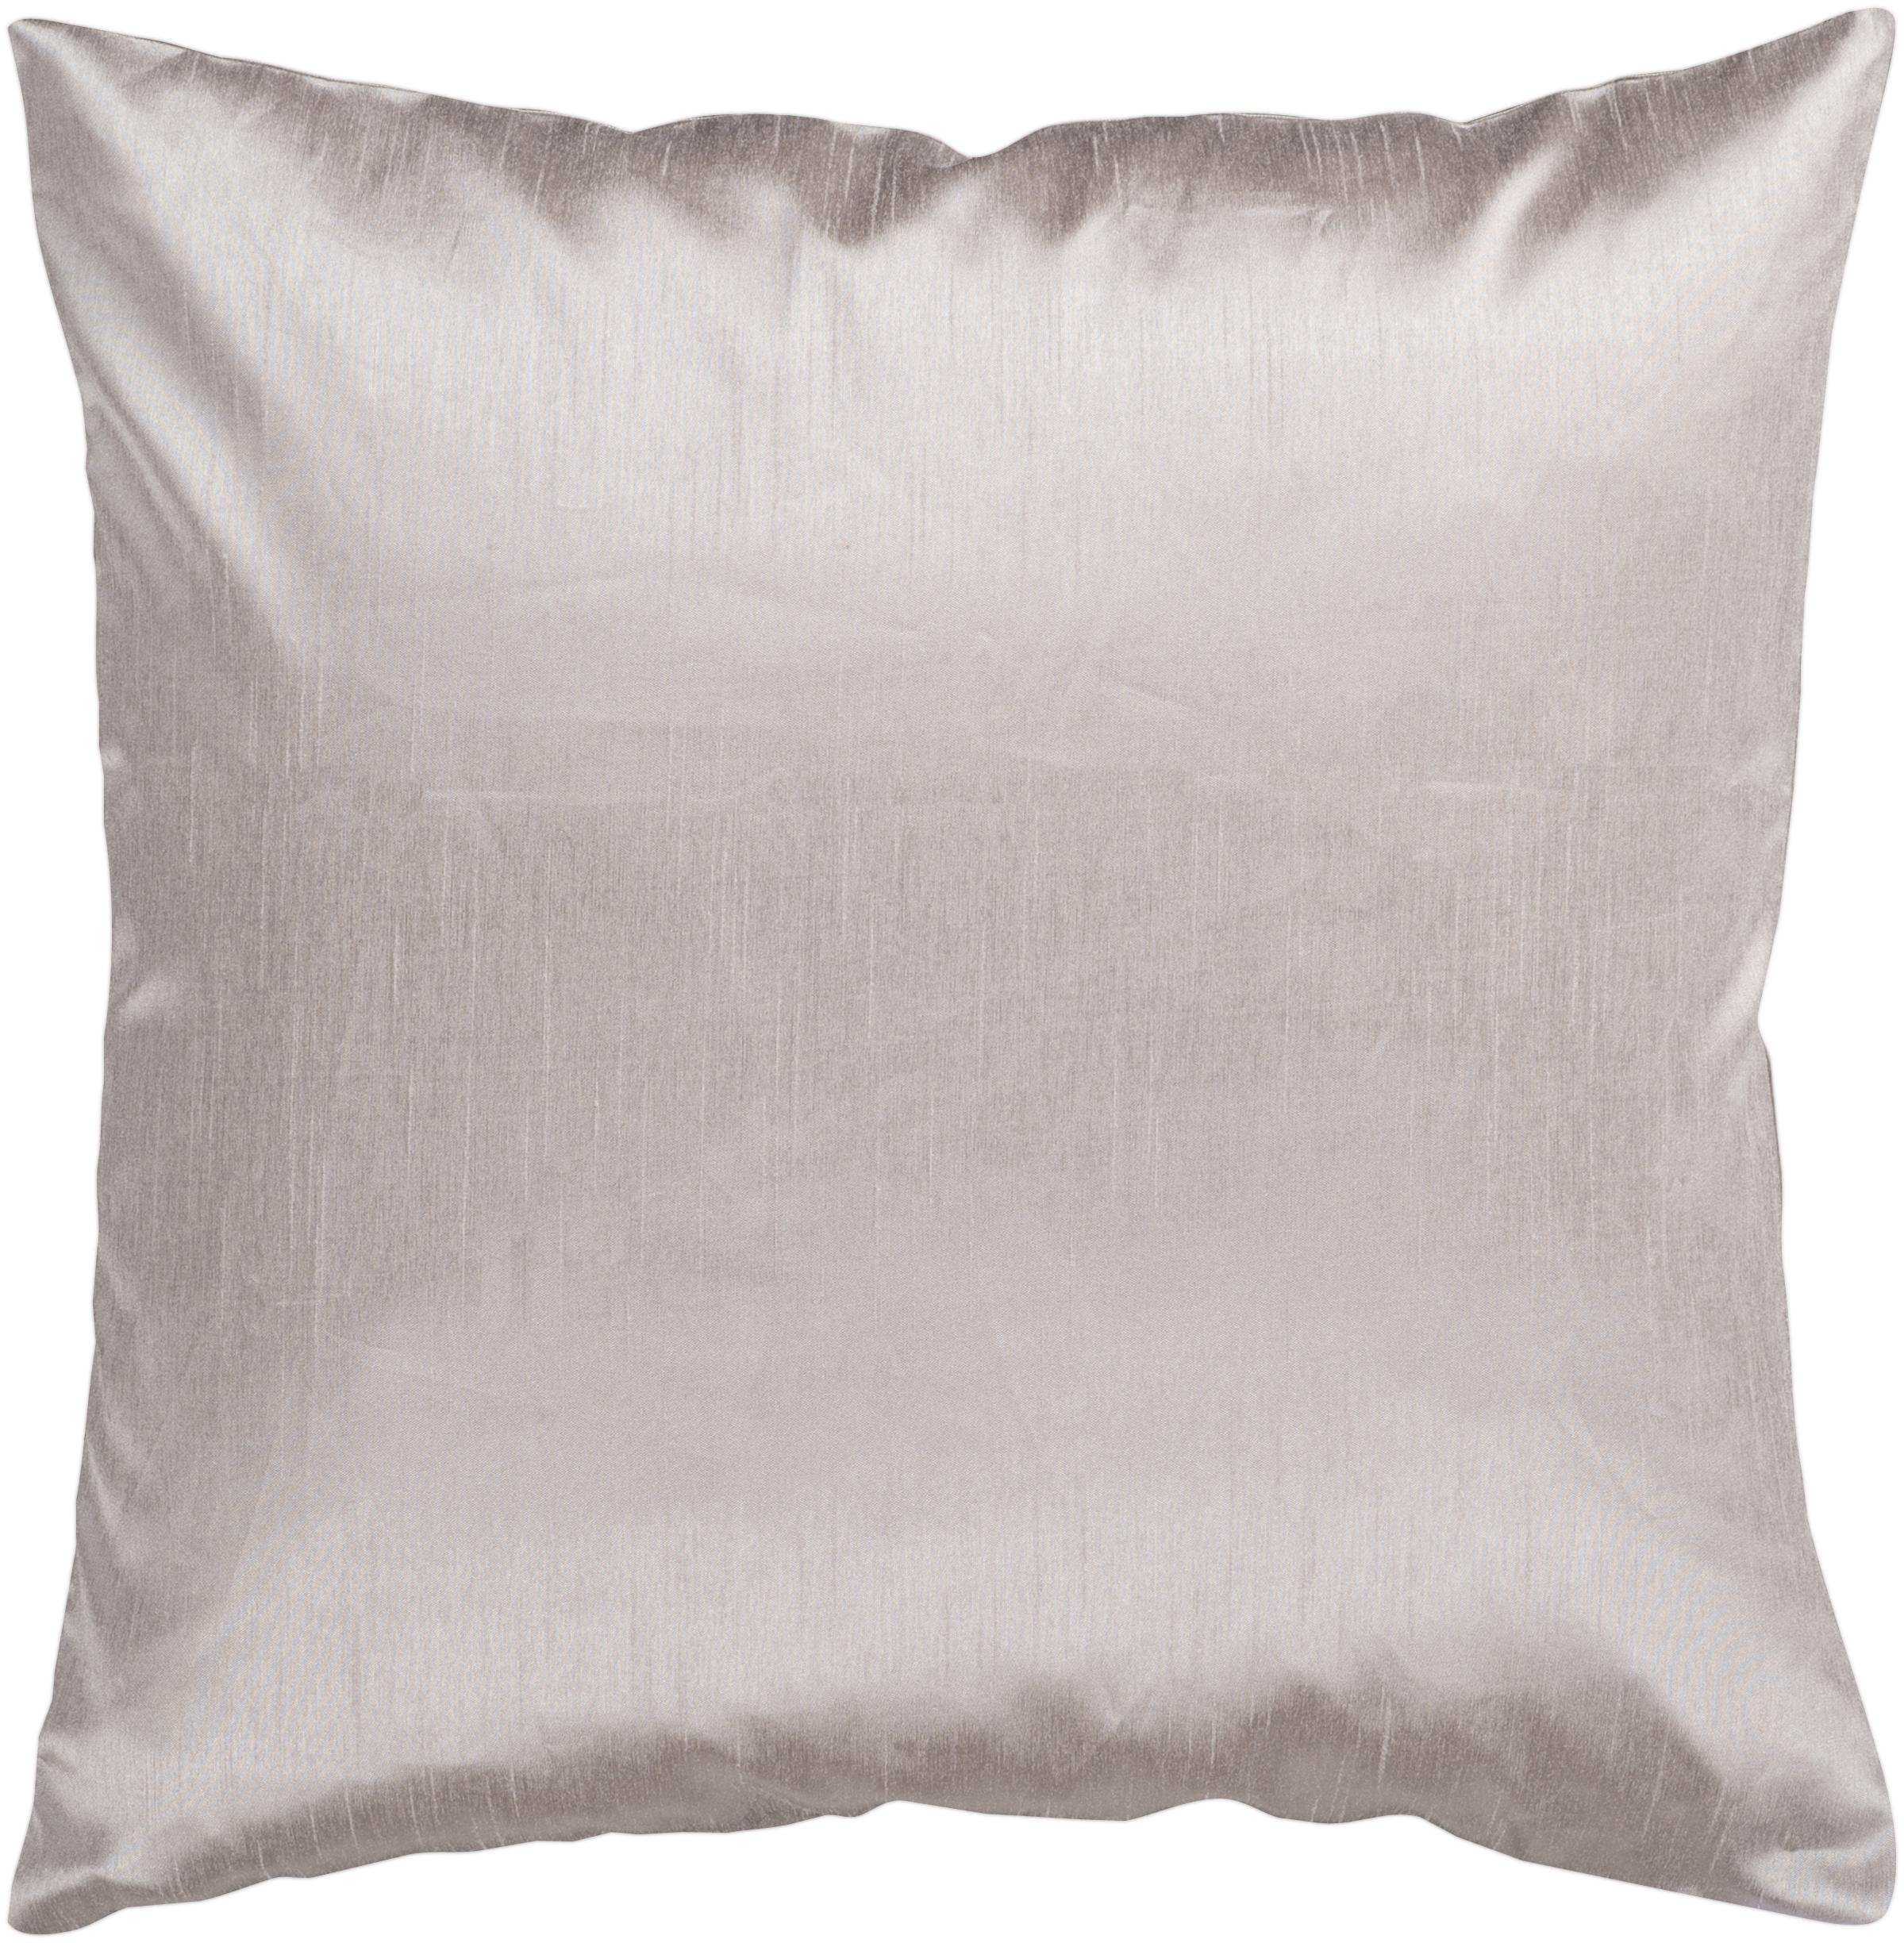 "Pillows 18"" x 18"" Pillow by Surya at Coconis Furniture & Mattress 1st"